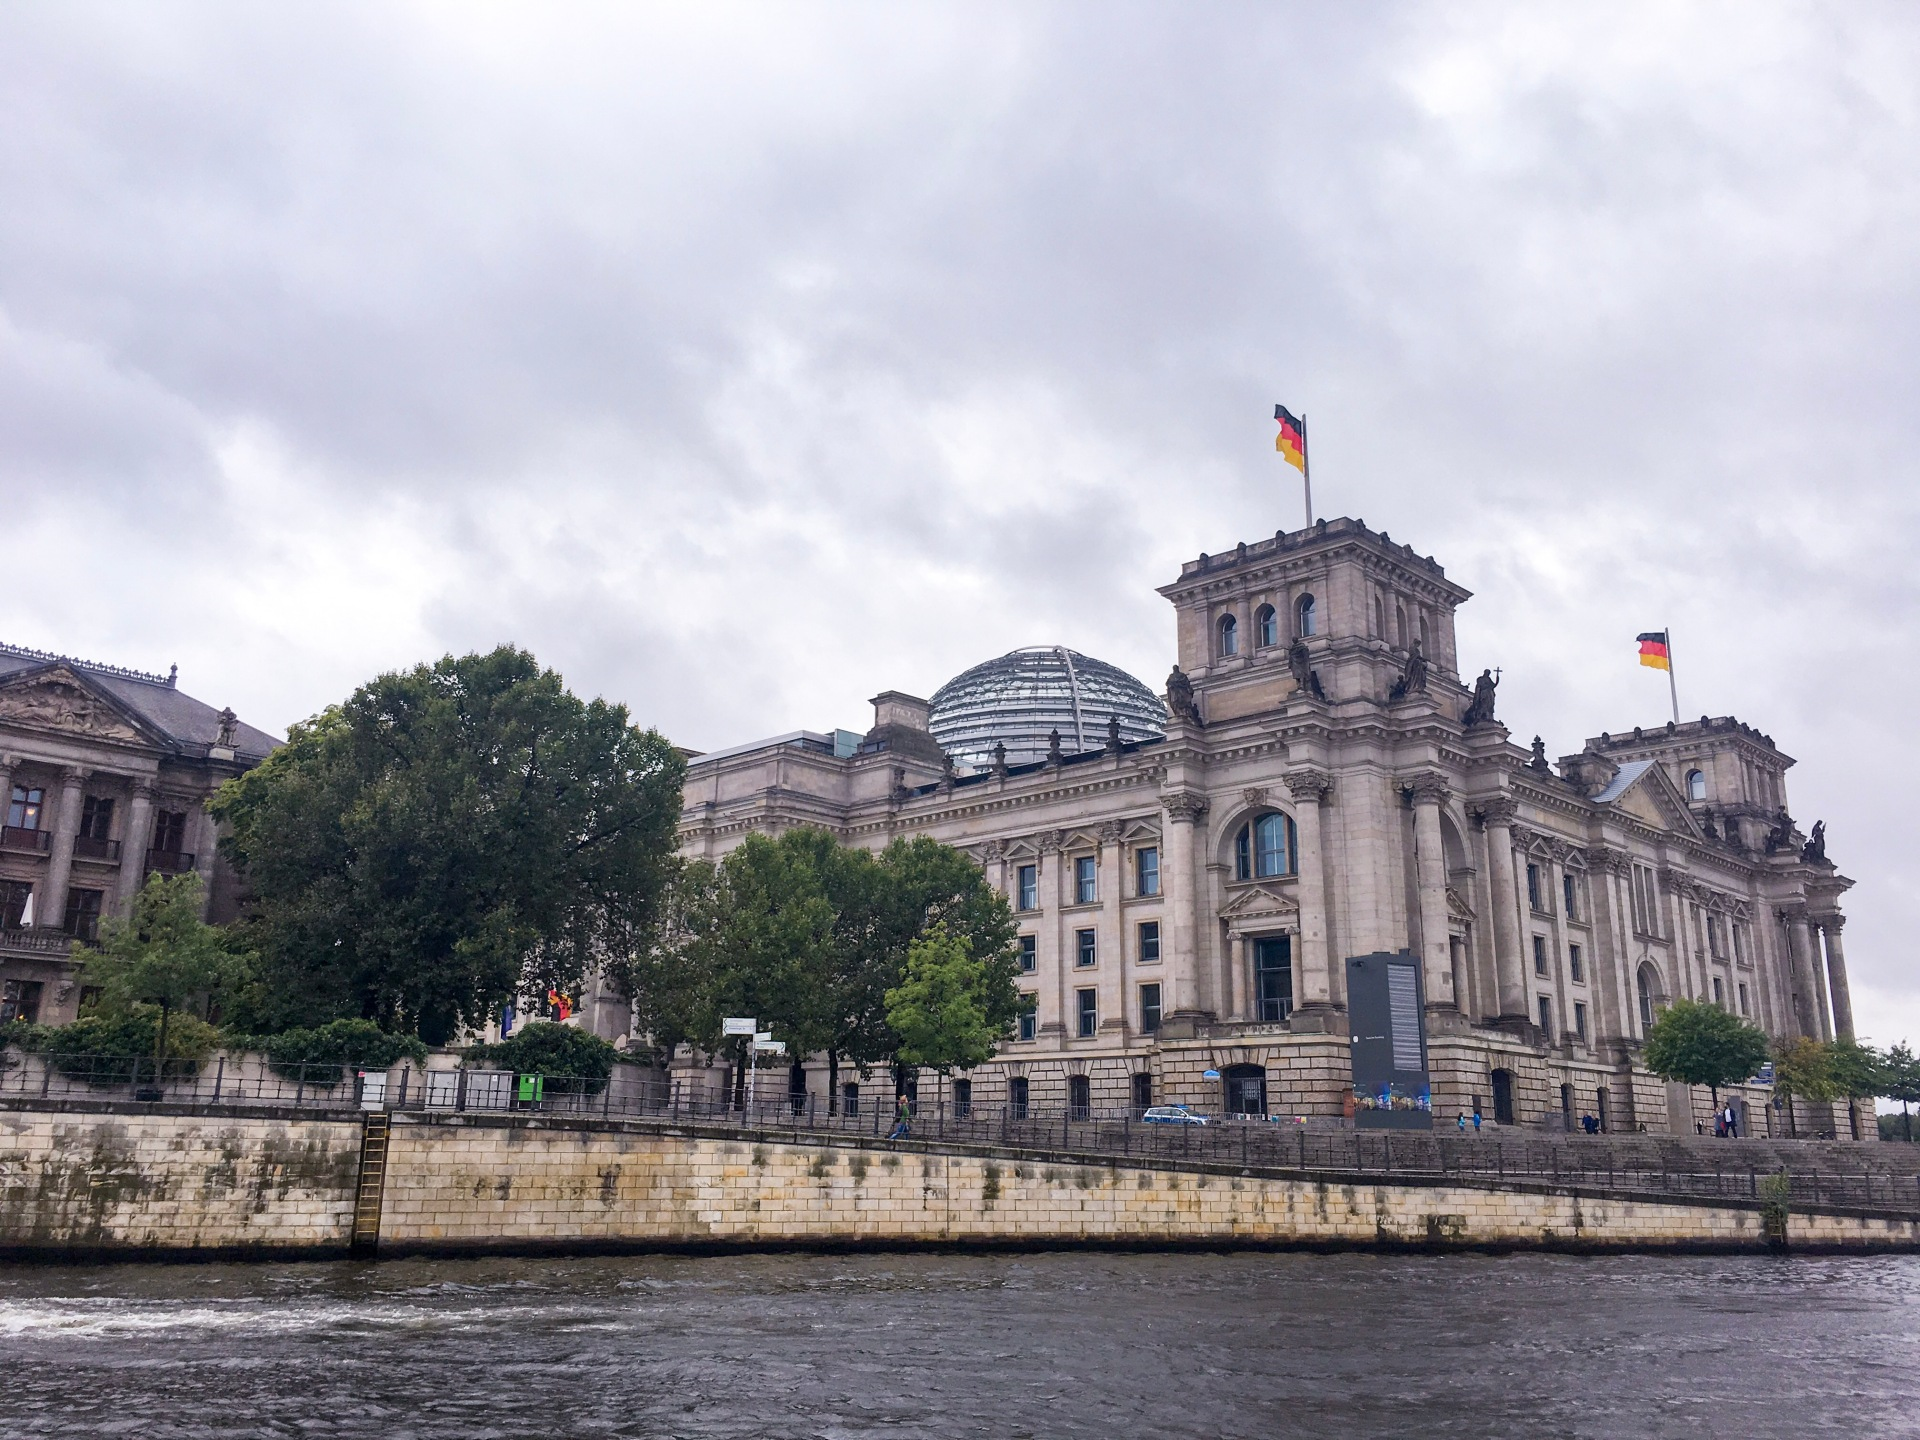 View of Bundestag over River Spree